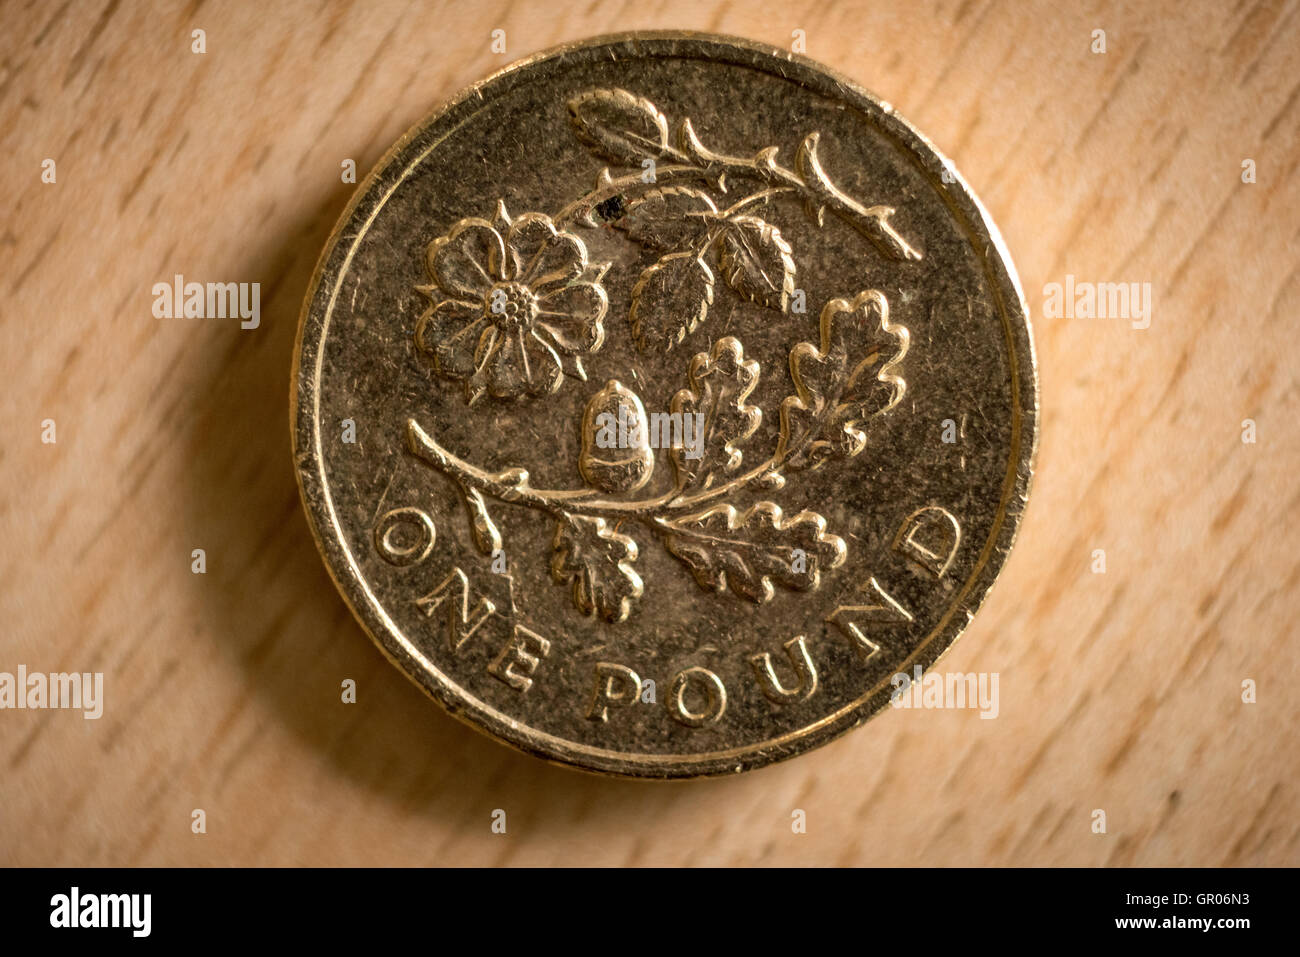 A 2013 British one pound coin, featuring the floral emblem of England, designed by Tiomthy Noad. - Stock Image